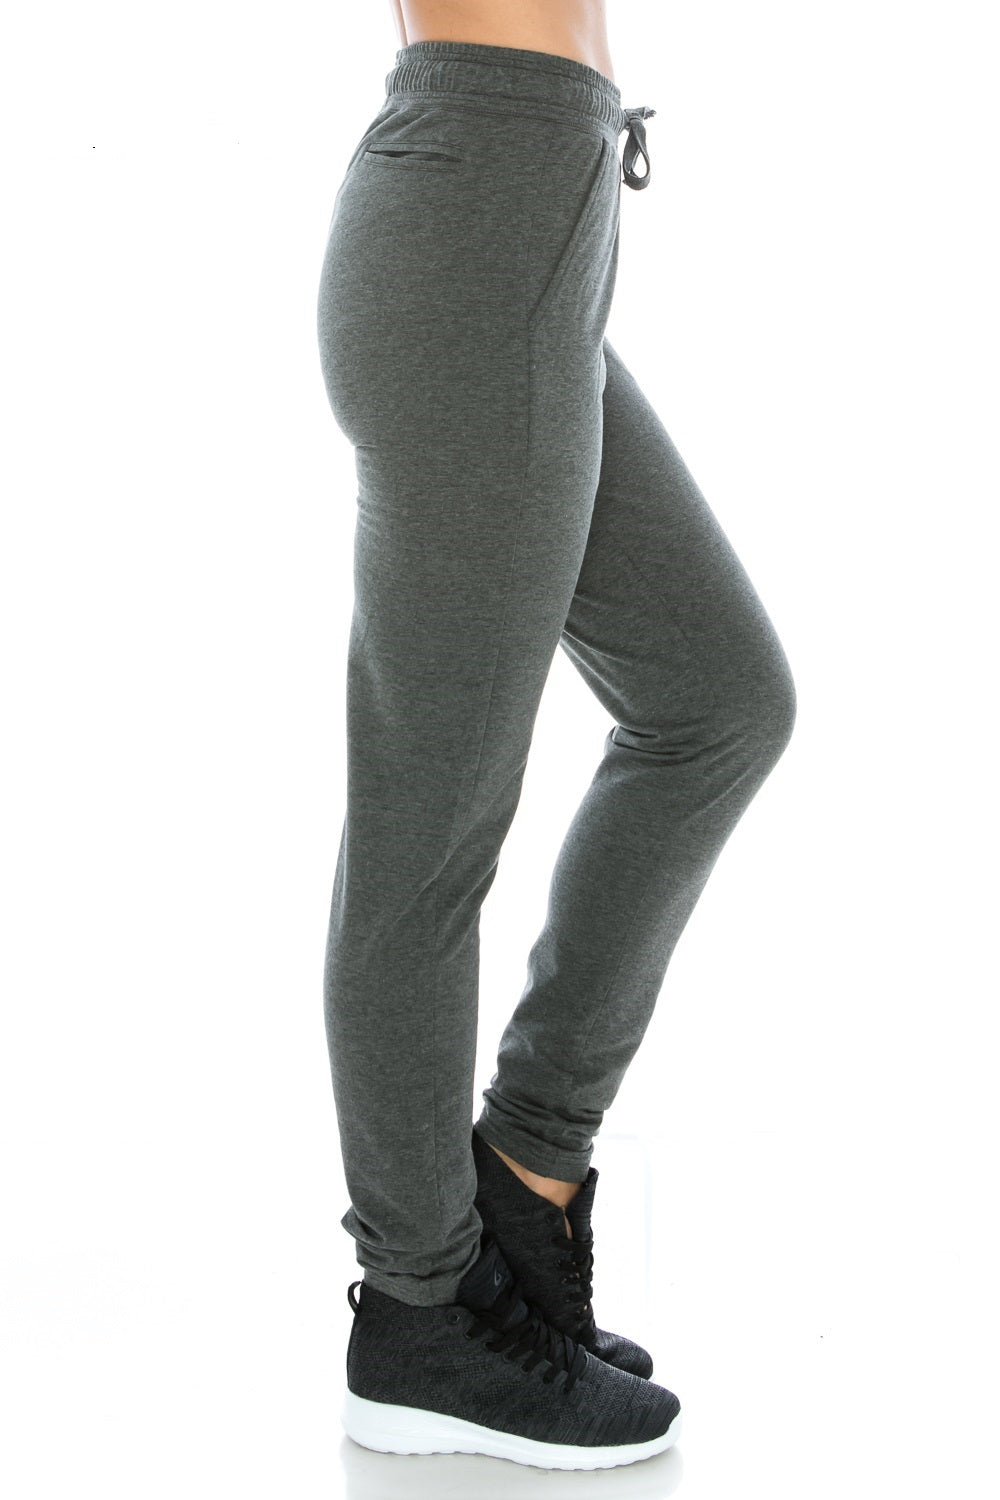 Charcoal Fitted Unisex Workout Sweatpants - Poplooks